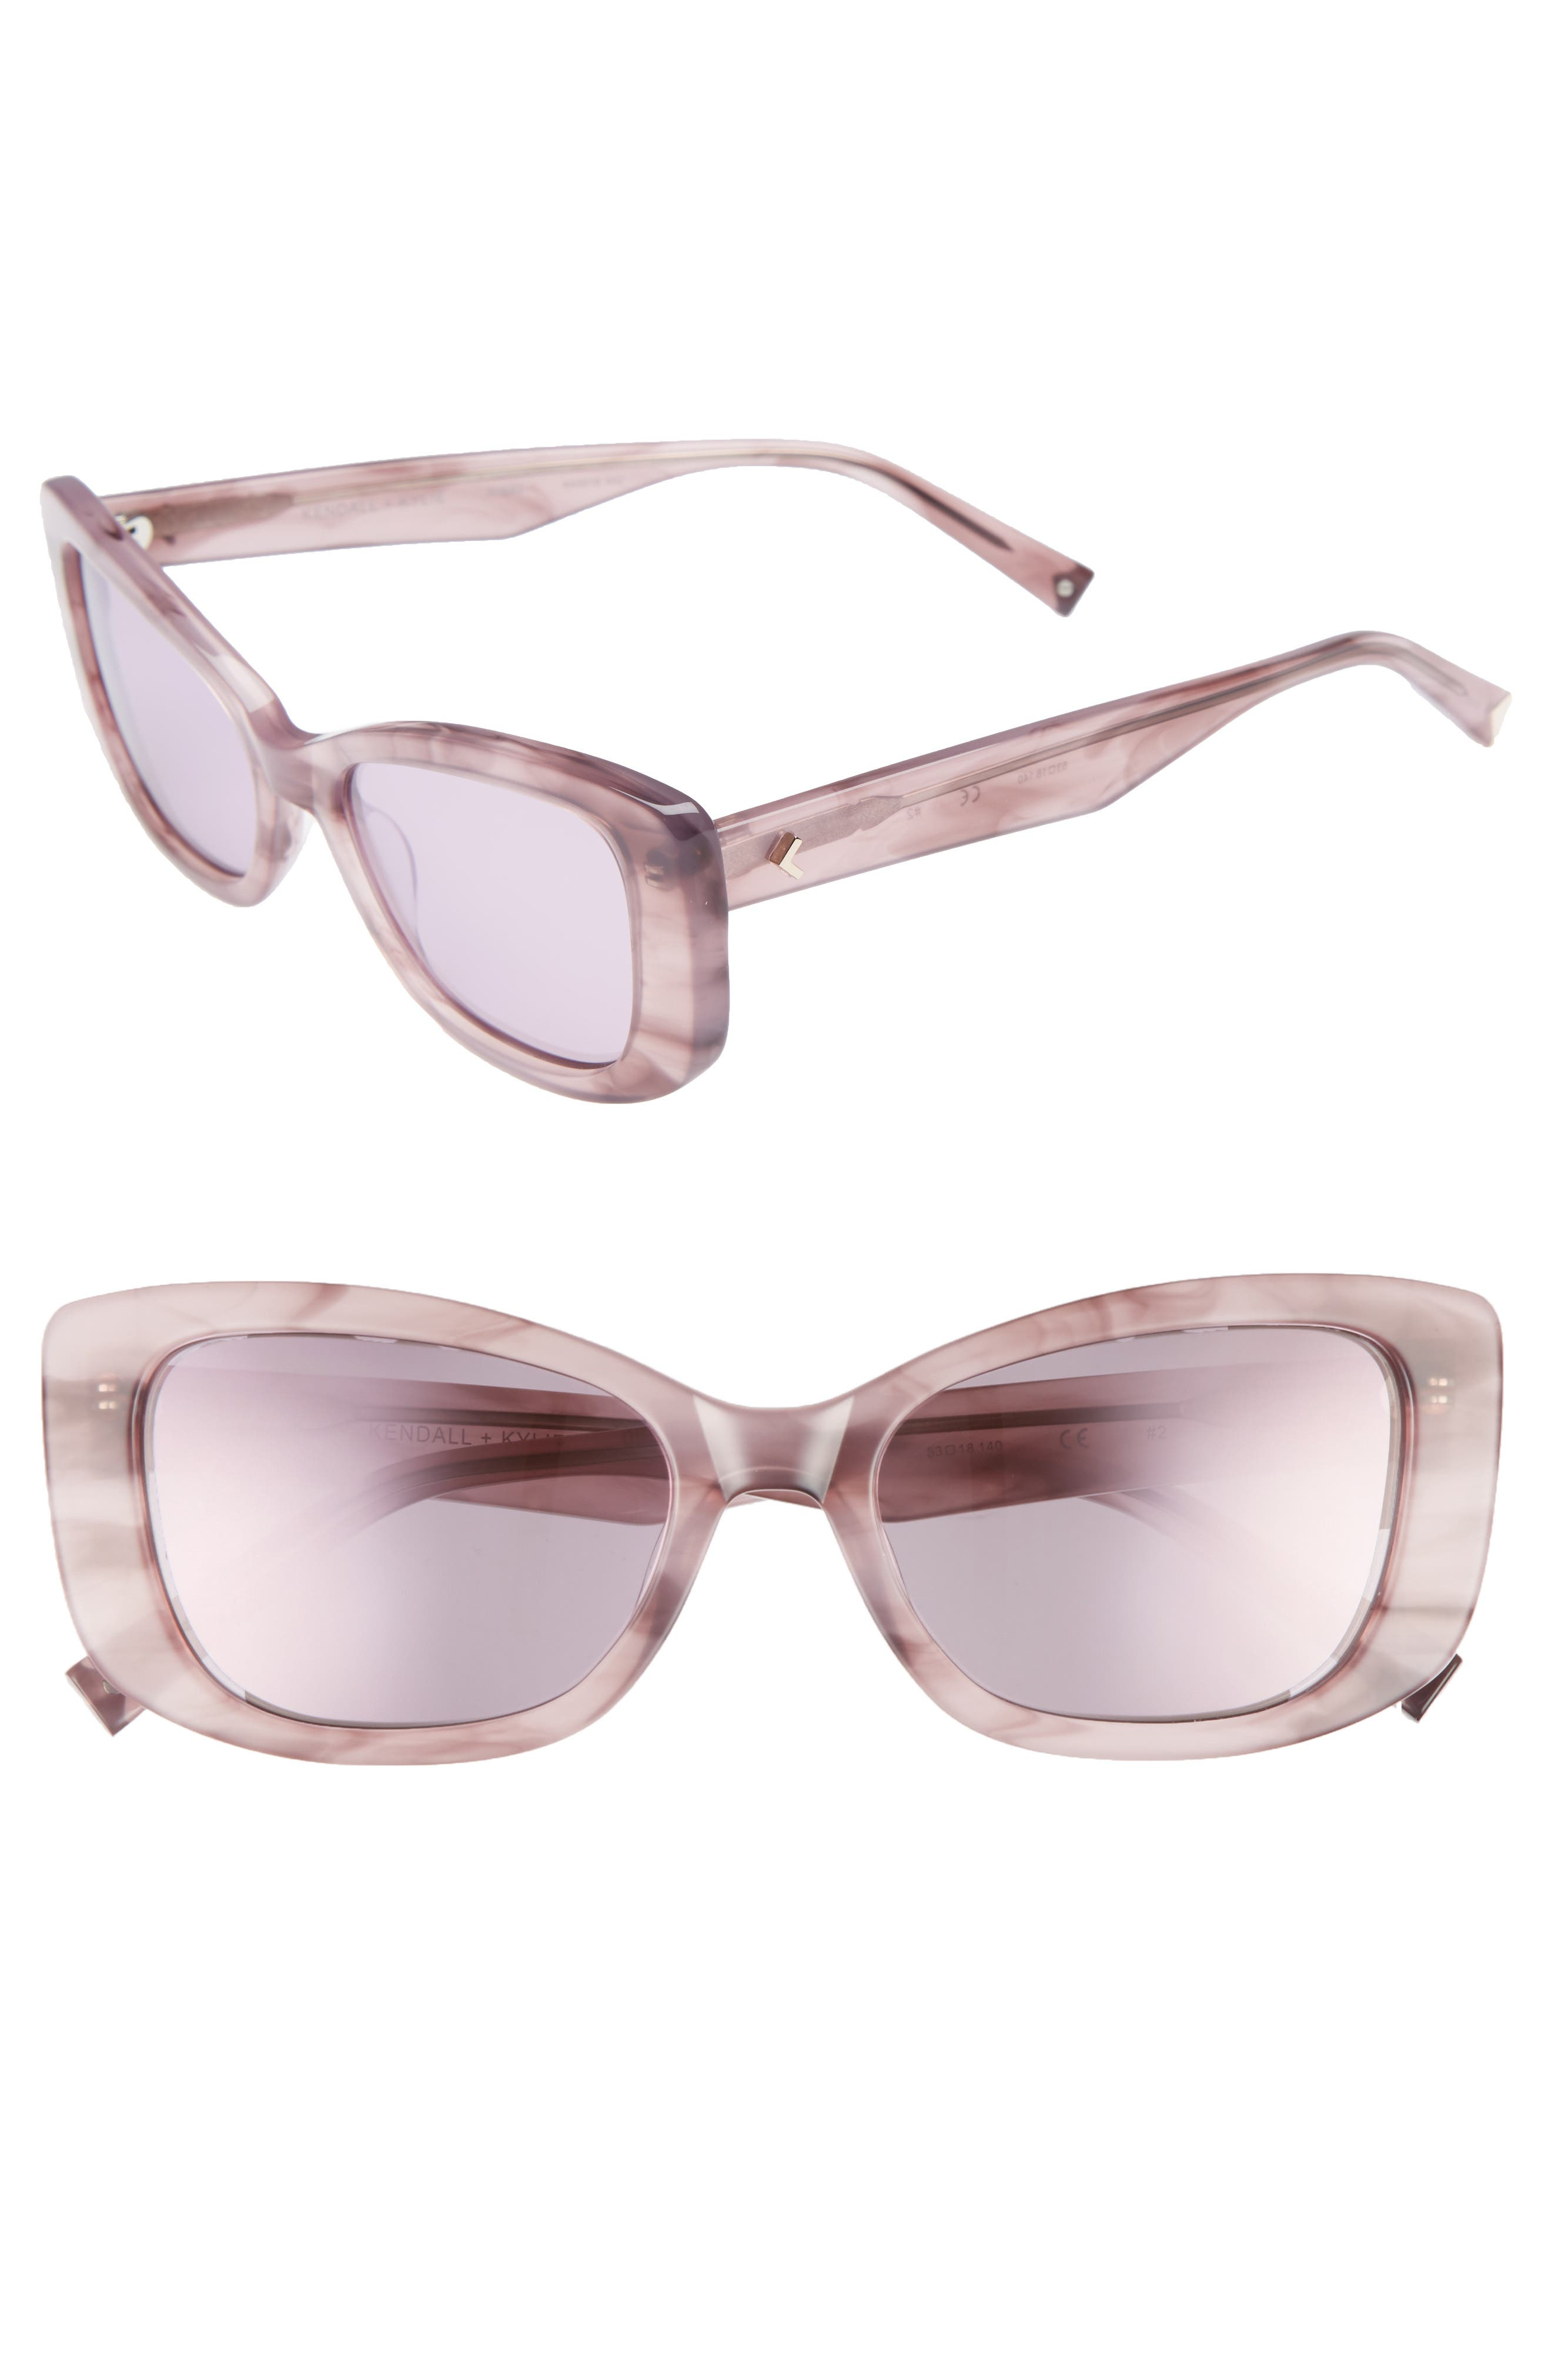 53mm Cat Eye Sunglasses,                             Main thumbnail 1, color,                             Rose Horn